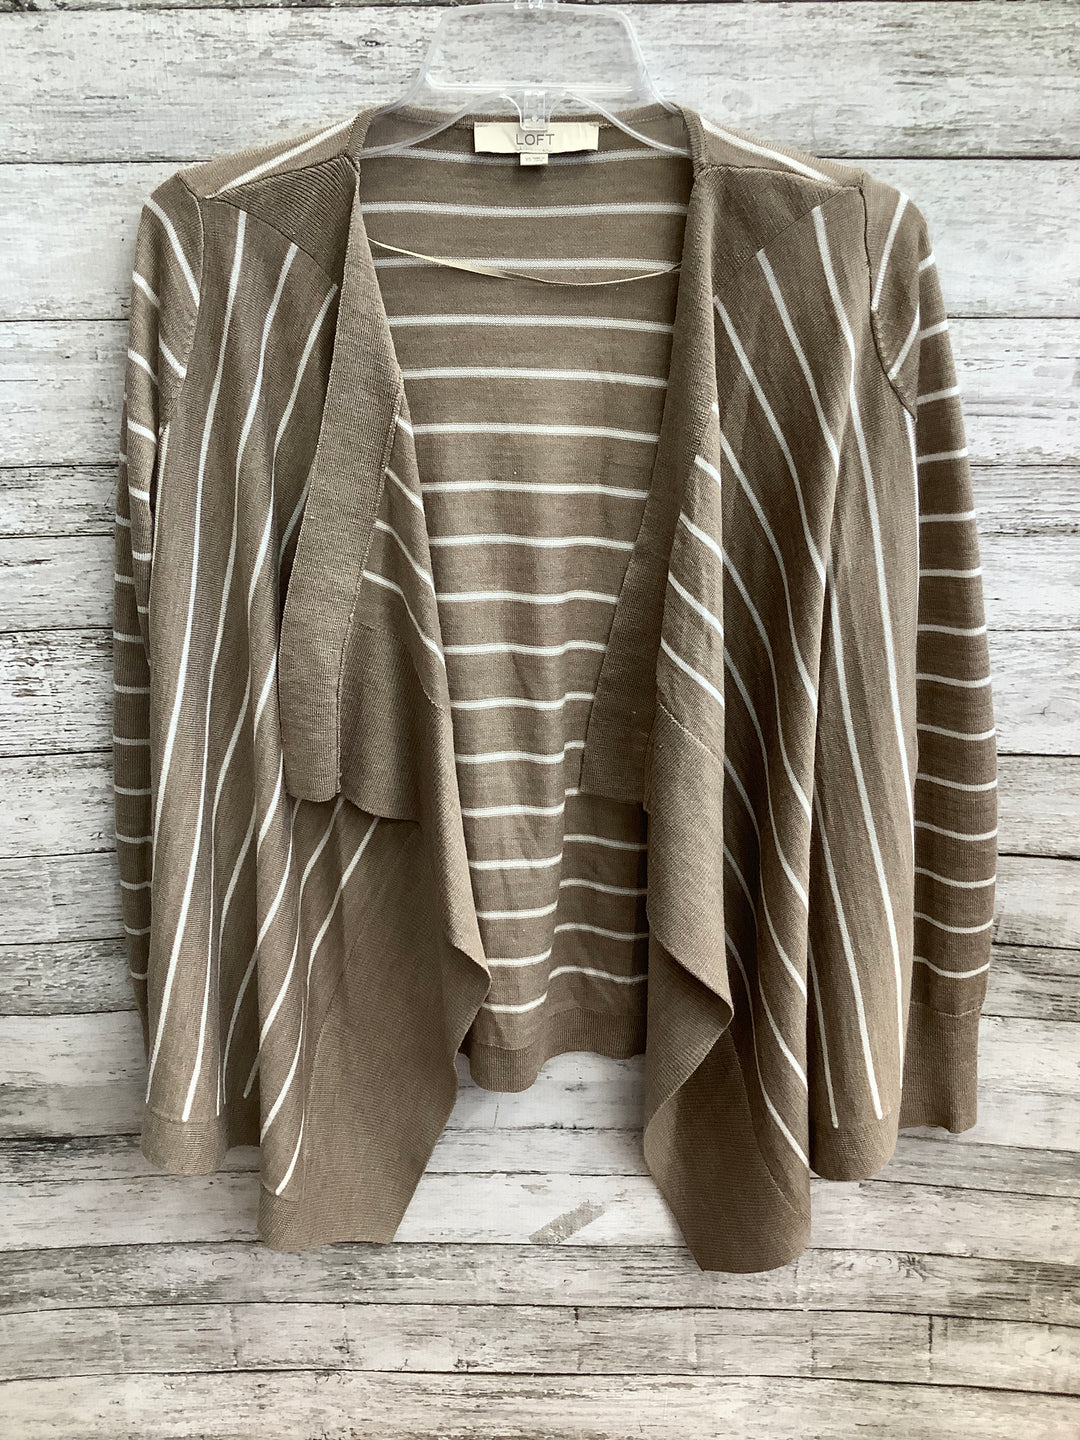 Primary Photo - brand: ann taylor loft , style: sweater cardigan lightweight , color: tan , size: xs , sku: 105-4940-4880